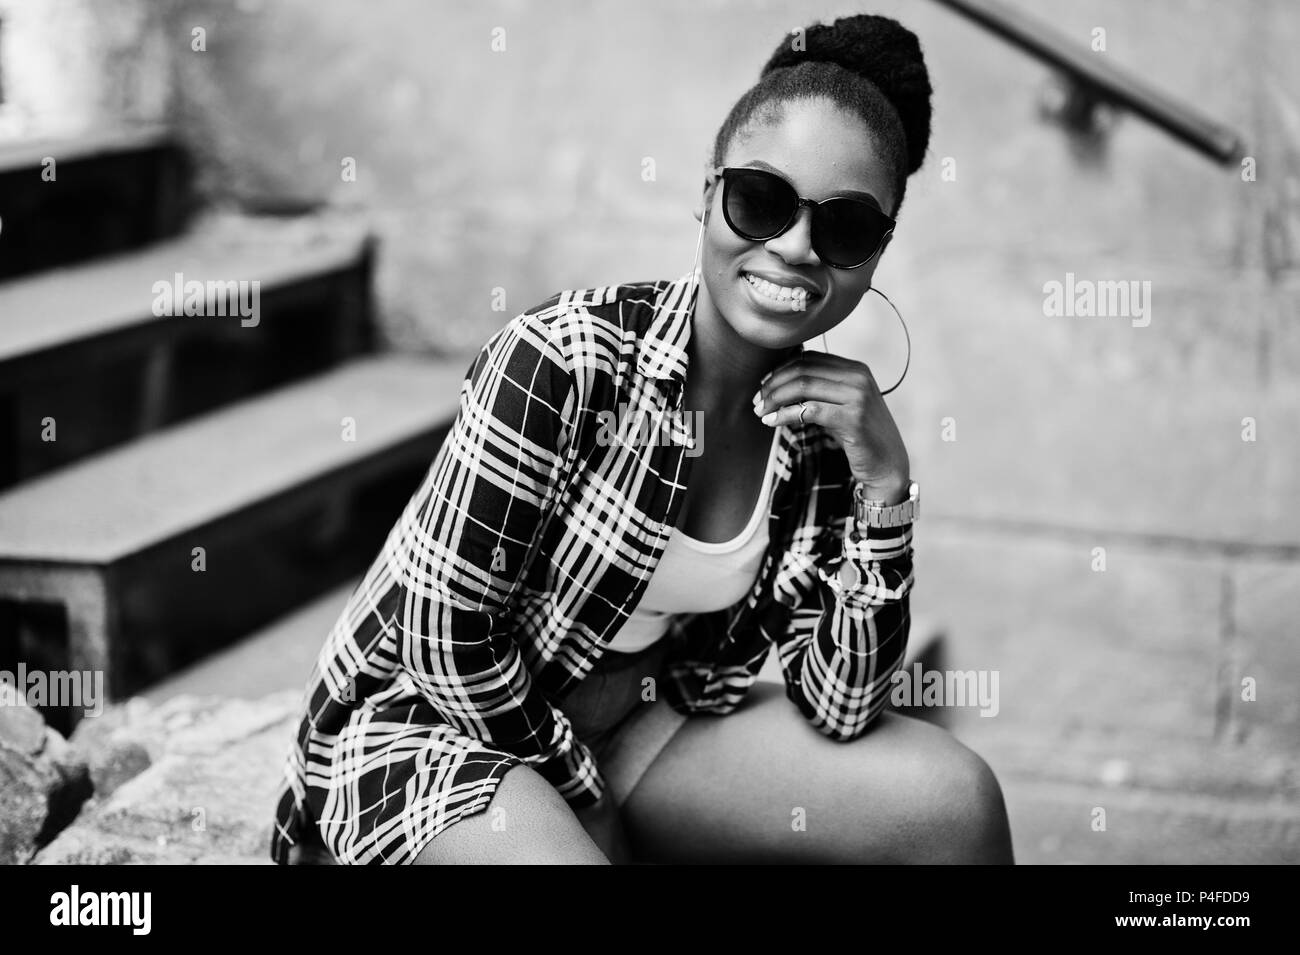 Hip hop african american girl on sunglasses and jeans shorts. Casual street fashion portrait of black woman. - Stock Image